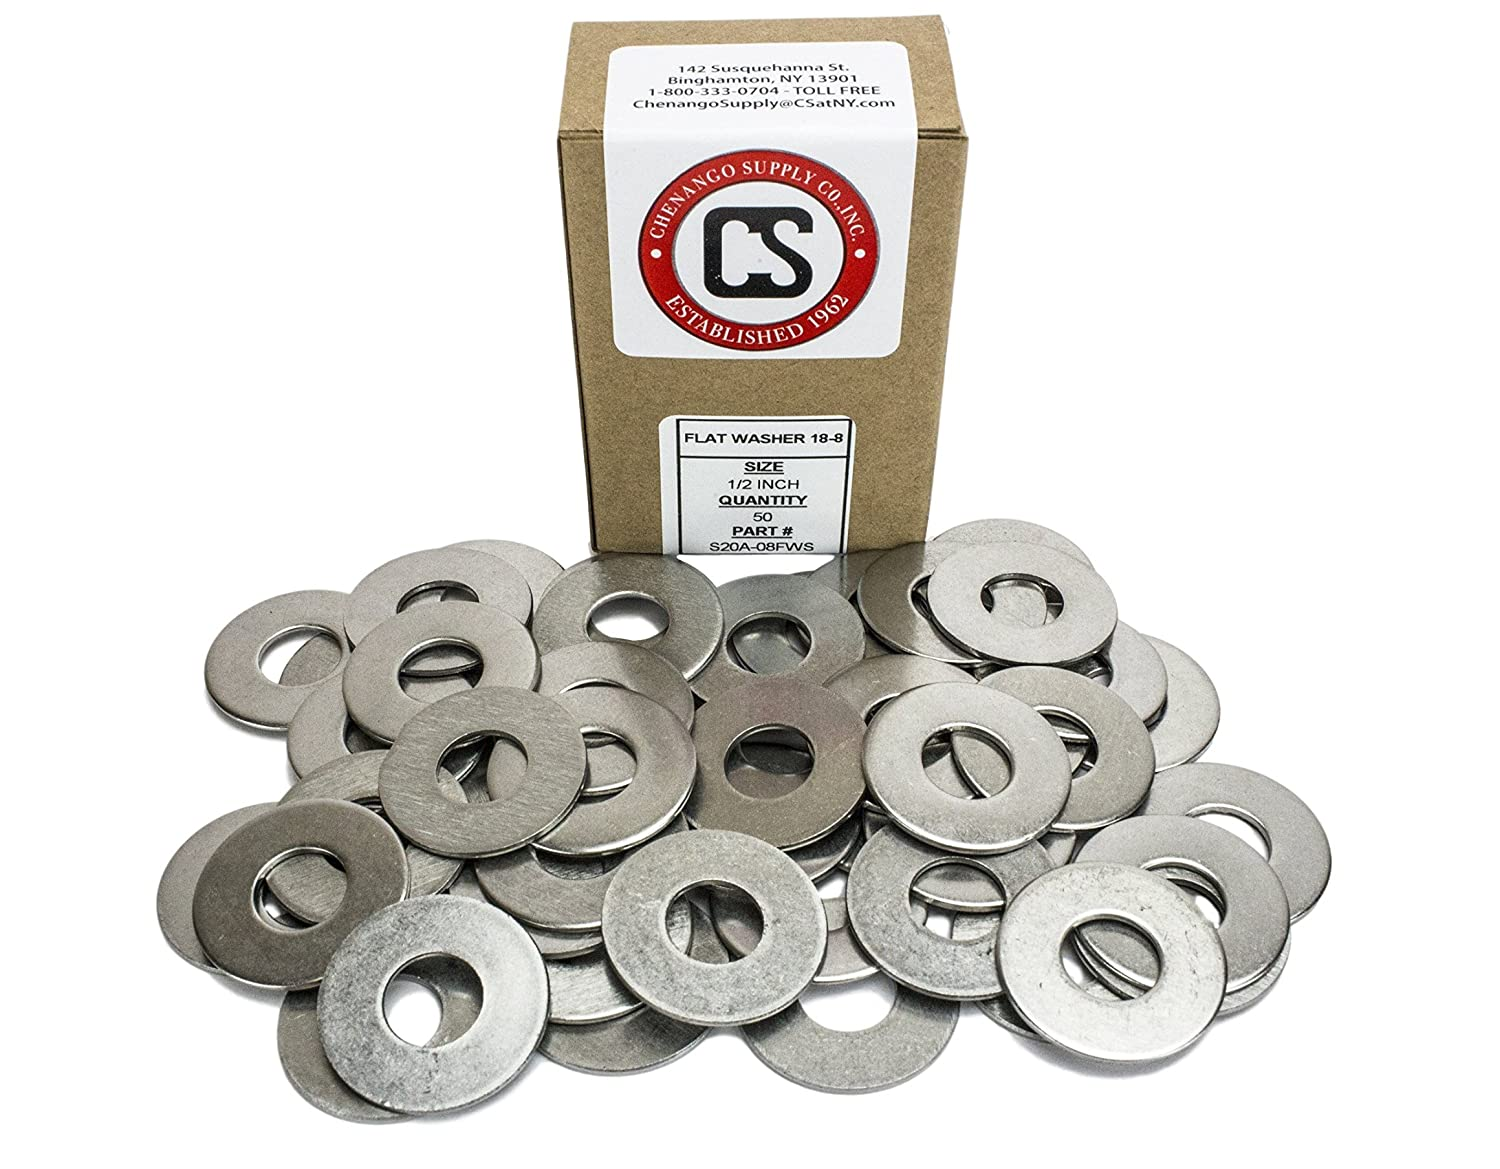 Stainless 1//2-13 x 4 Hex Head Bolts 25 pieces 3//4 To 5 Lengths Available in Listing 1//2-13 x 4 304 Stainless Steel